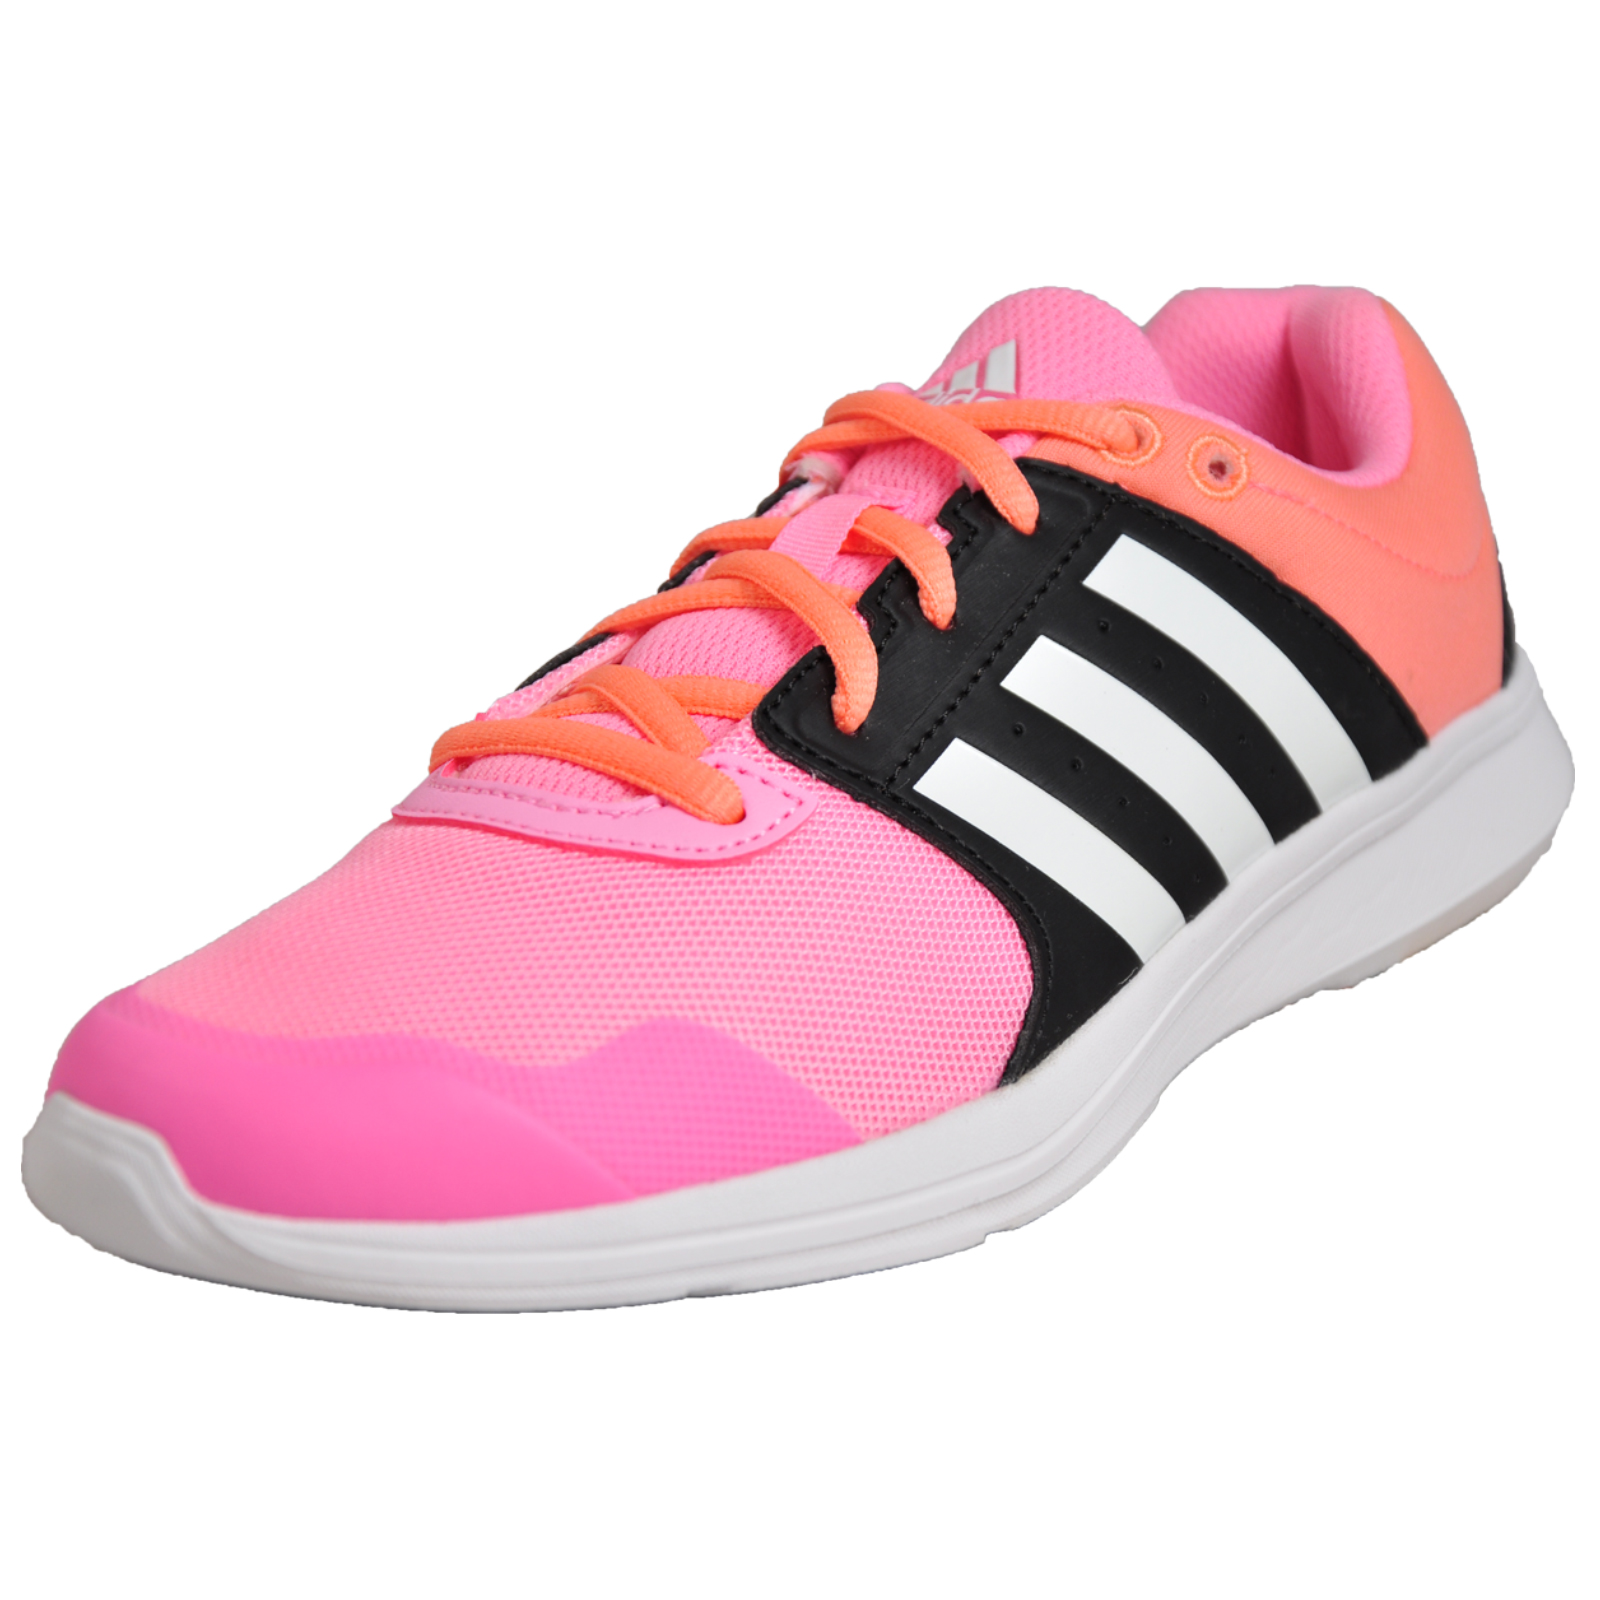 fa4486f842d6 Details about Adidas Essential Fun 2 Womens Ladies Running Gym Fitnee  Workout Trainers Pink